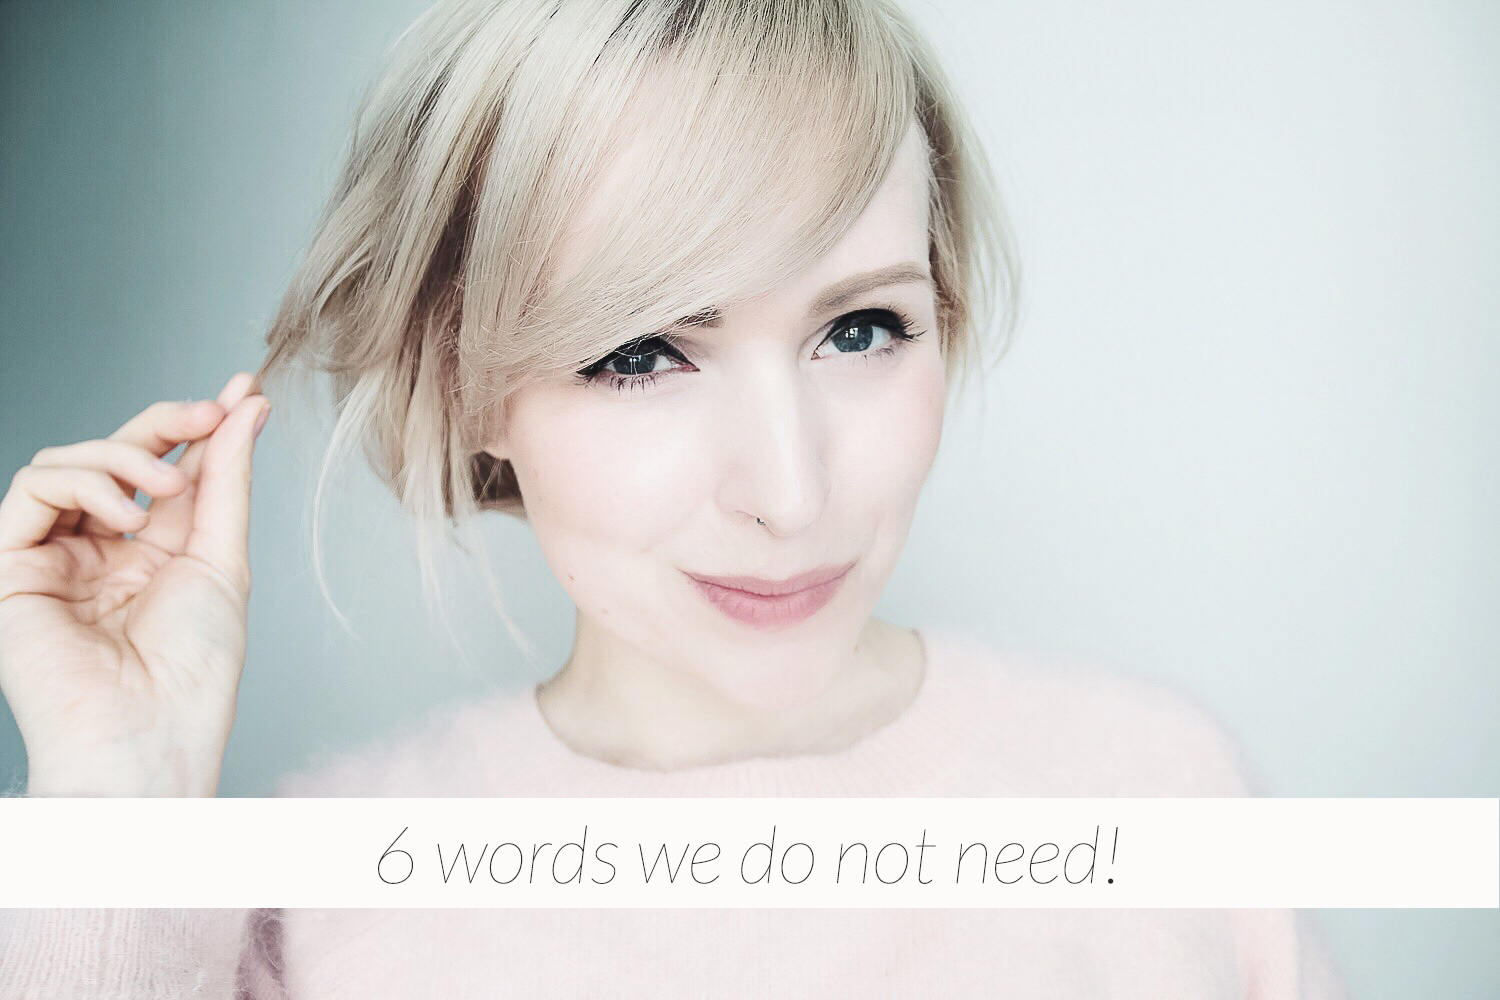 6 words we do not need